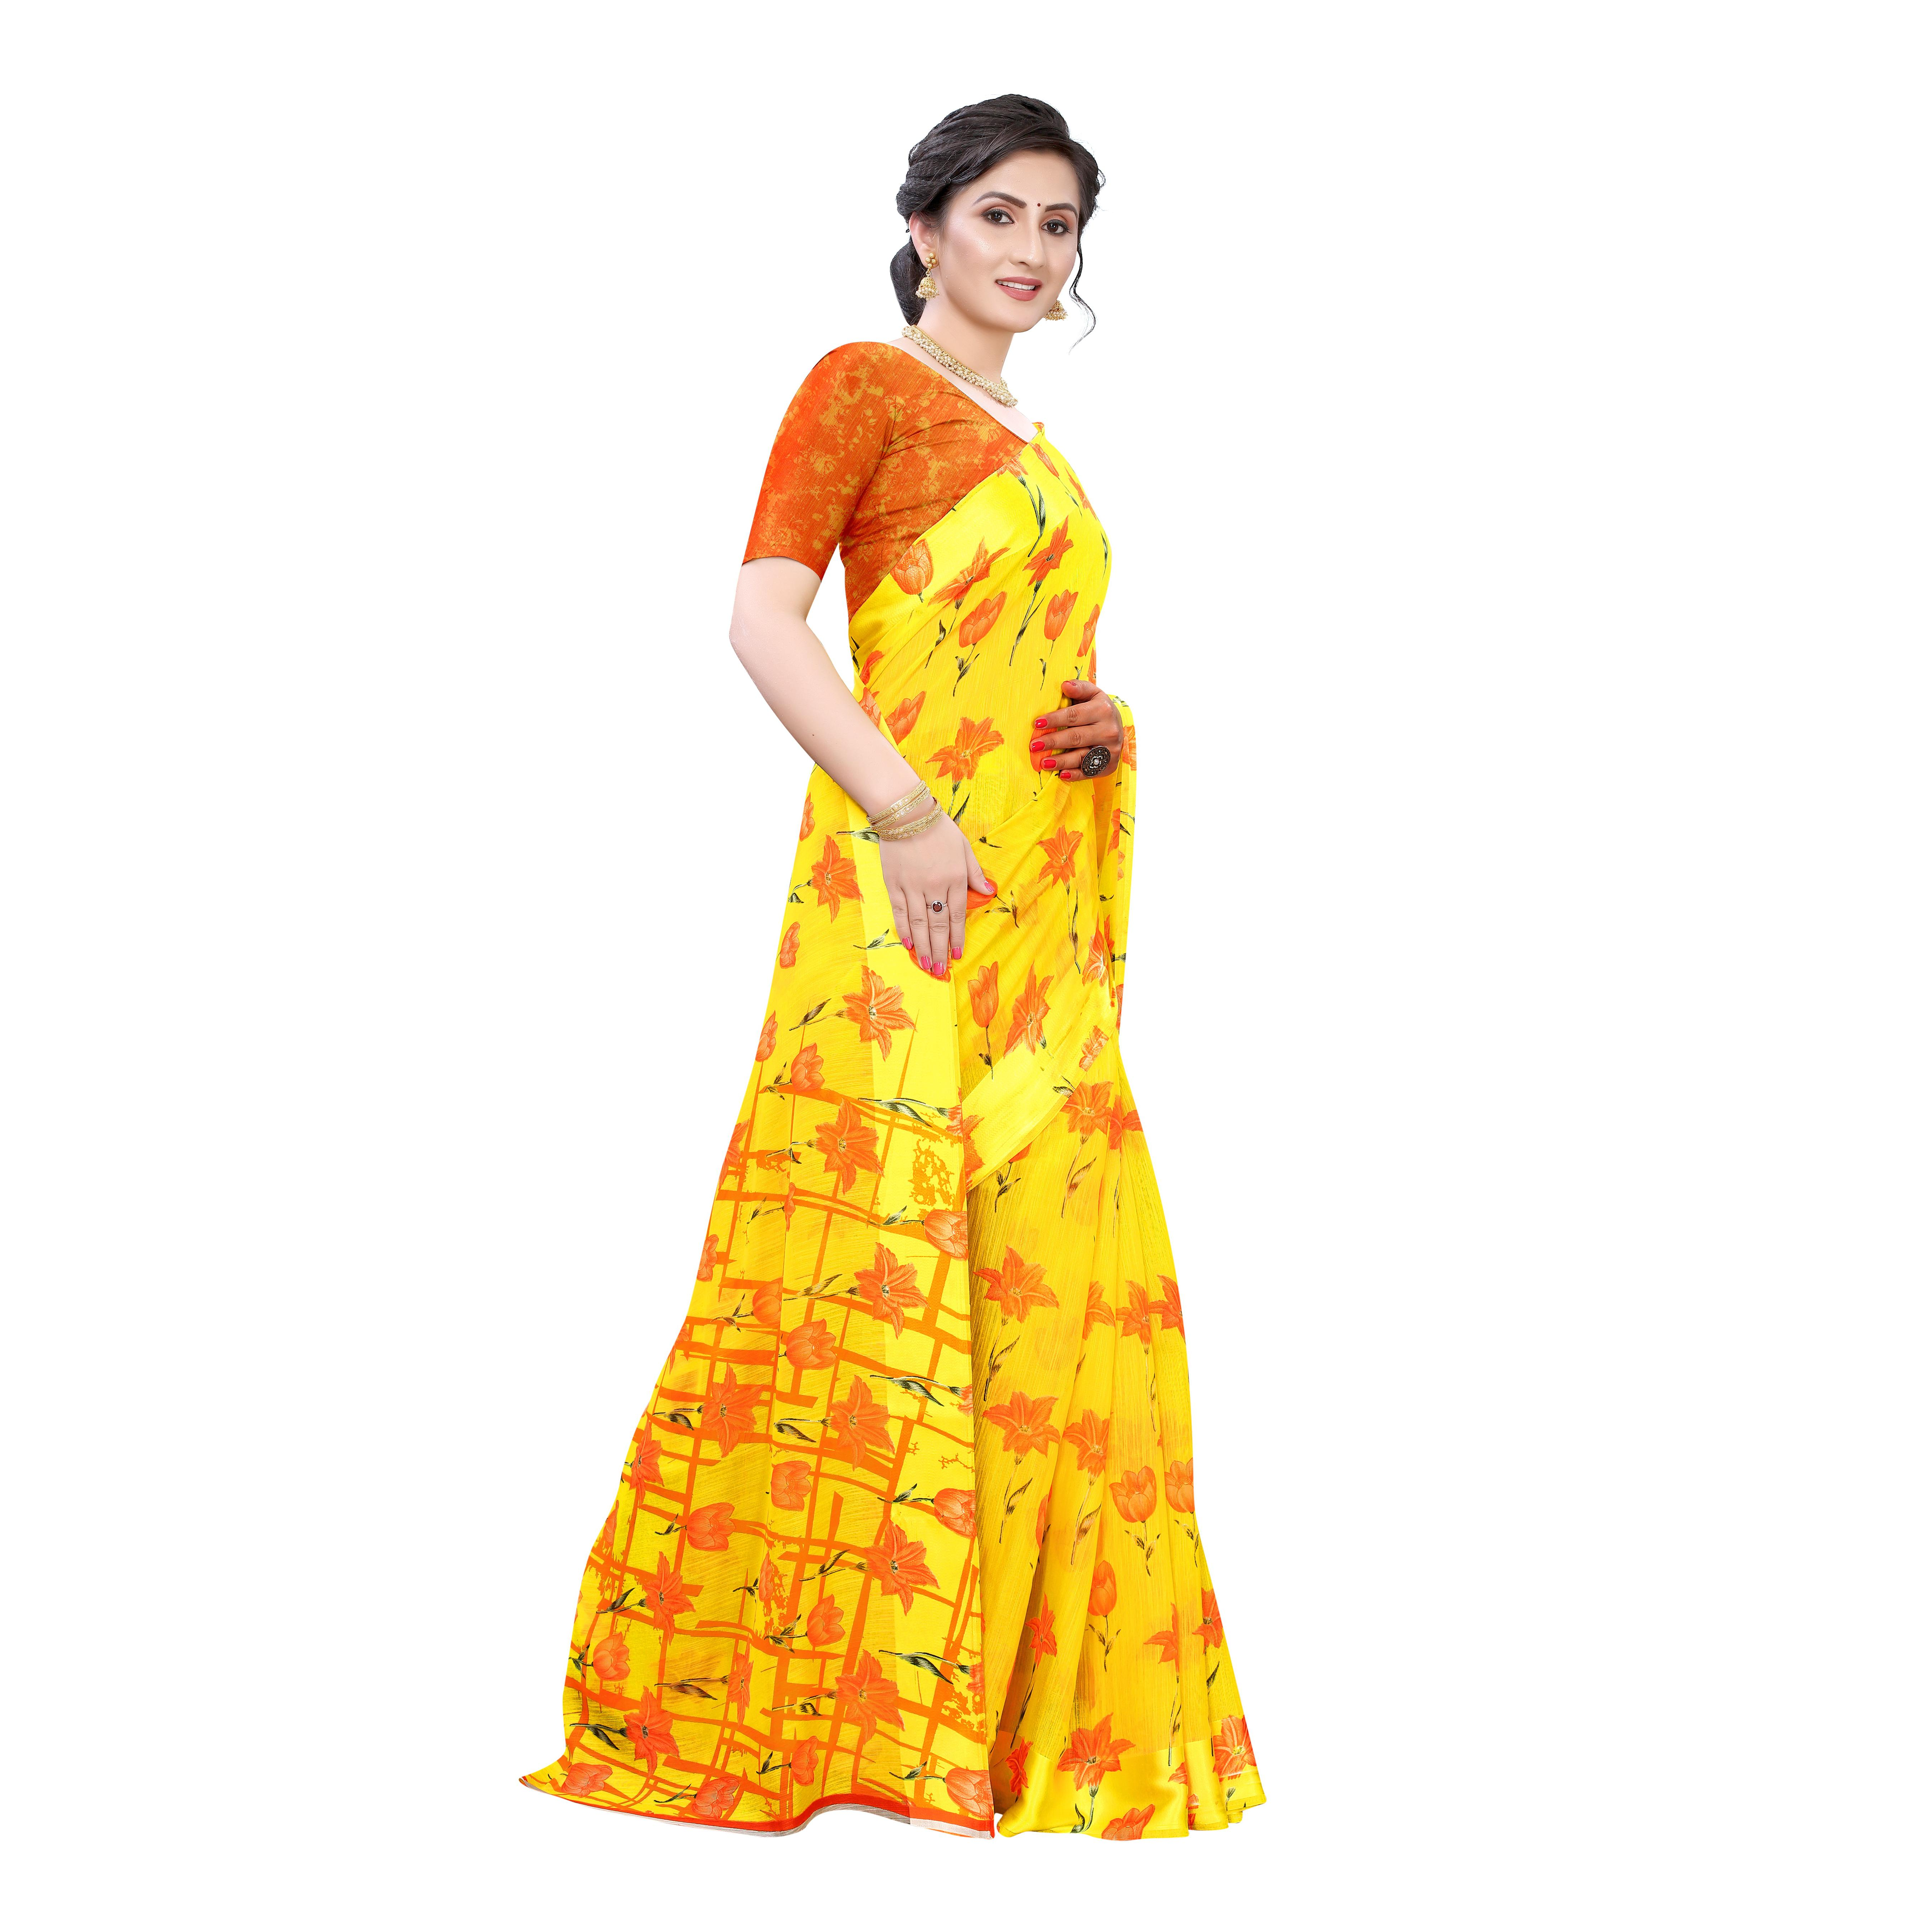 Amazing Yellow-Orange Colored Casual Wear Floral Printed Linen Saree